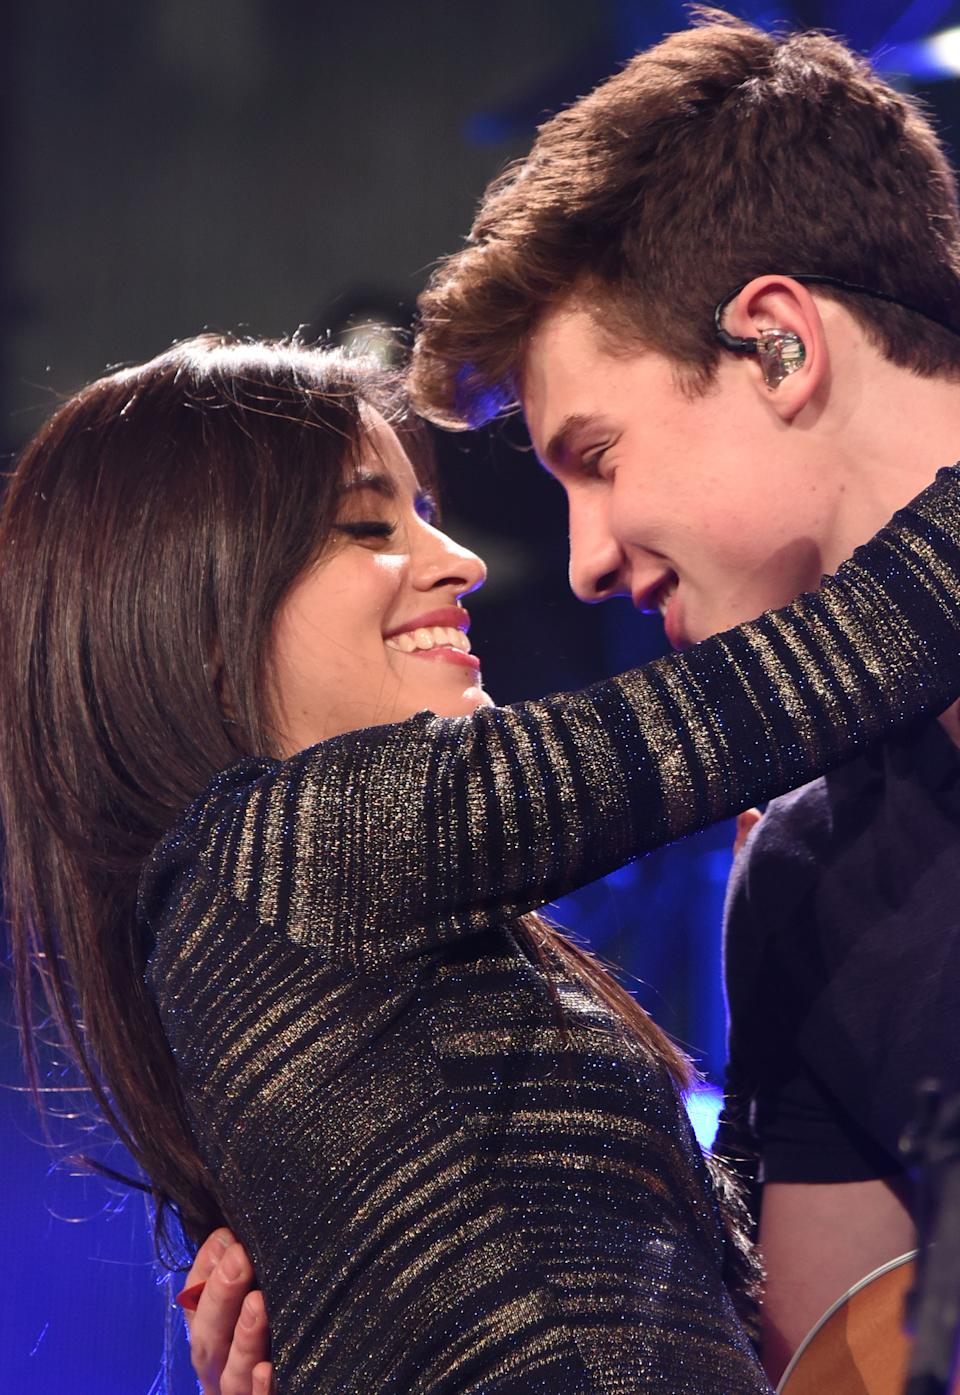 Camila Cabello and Shawn Mendes performing